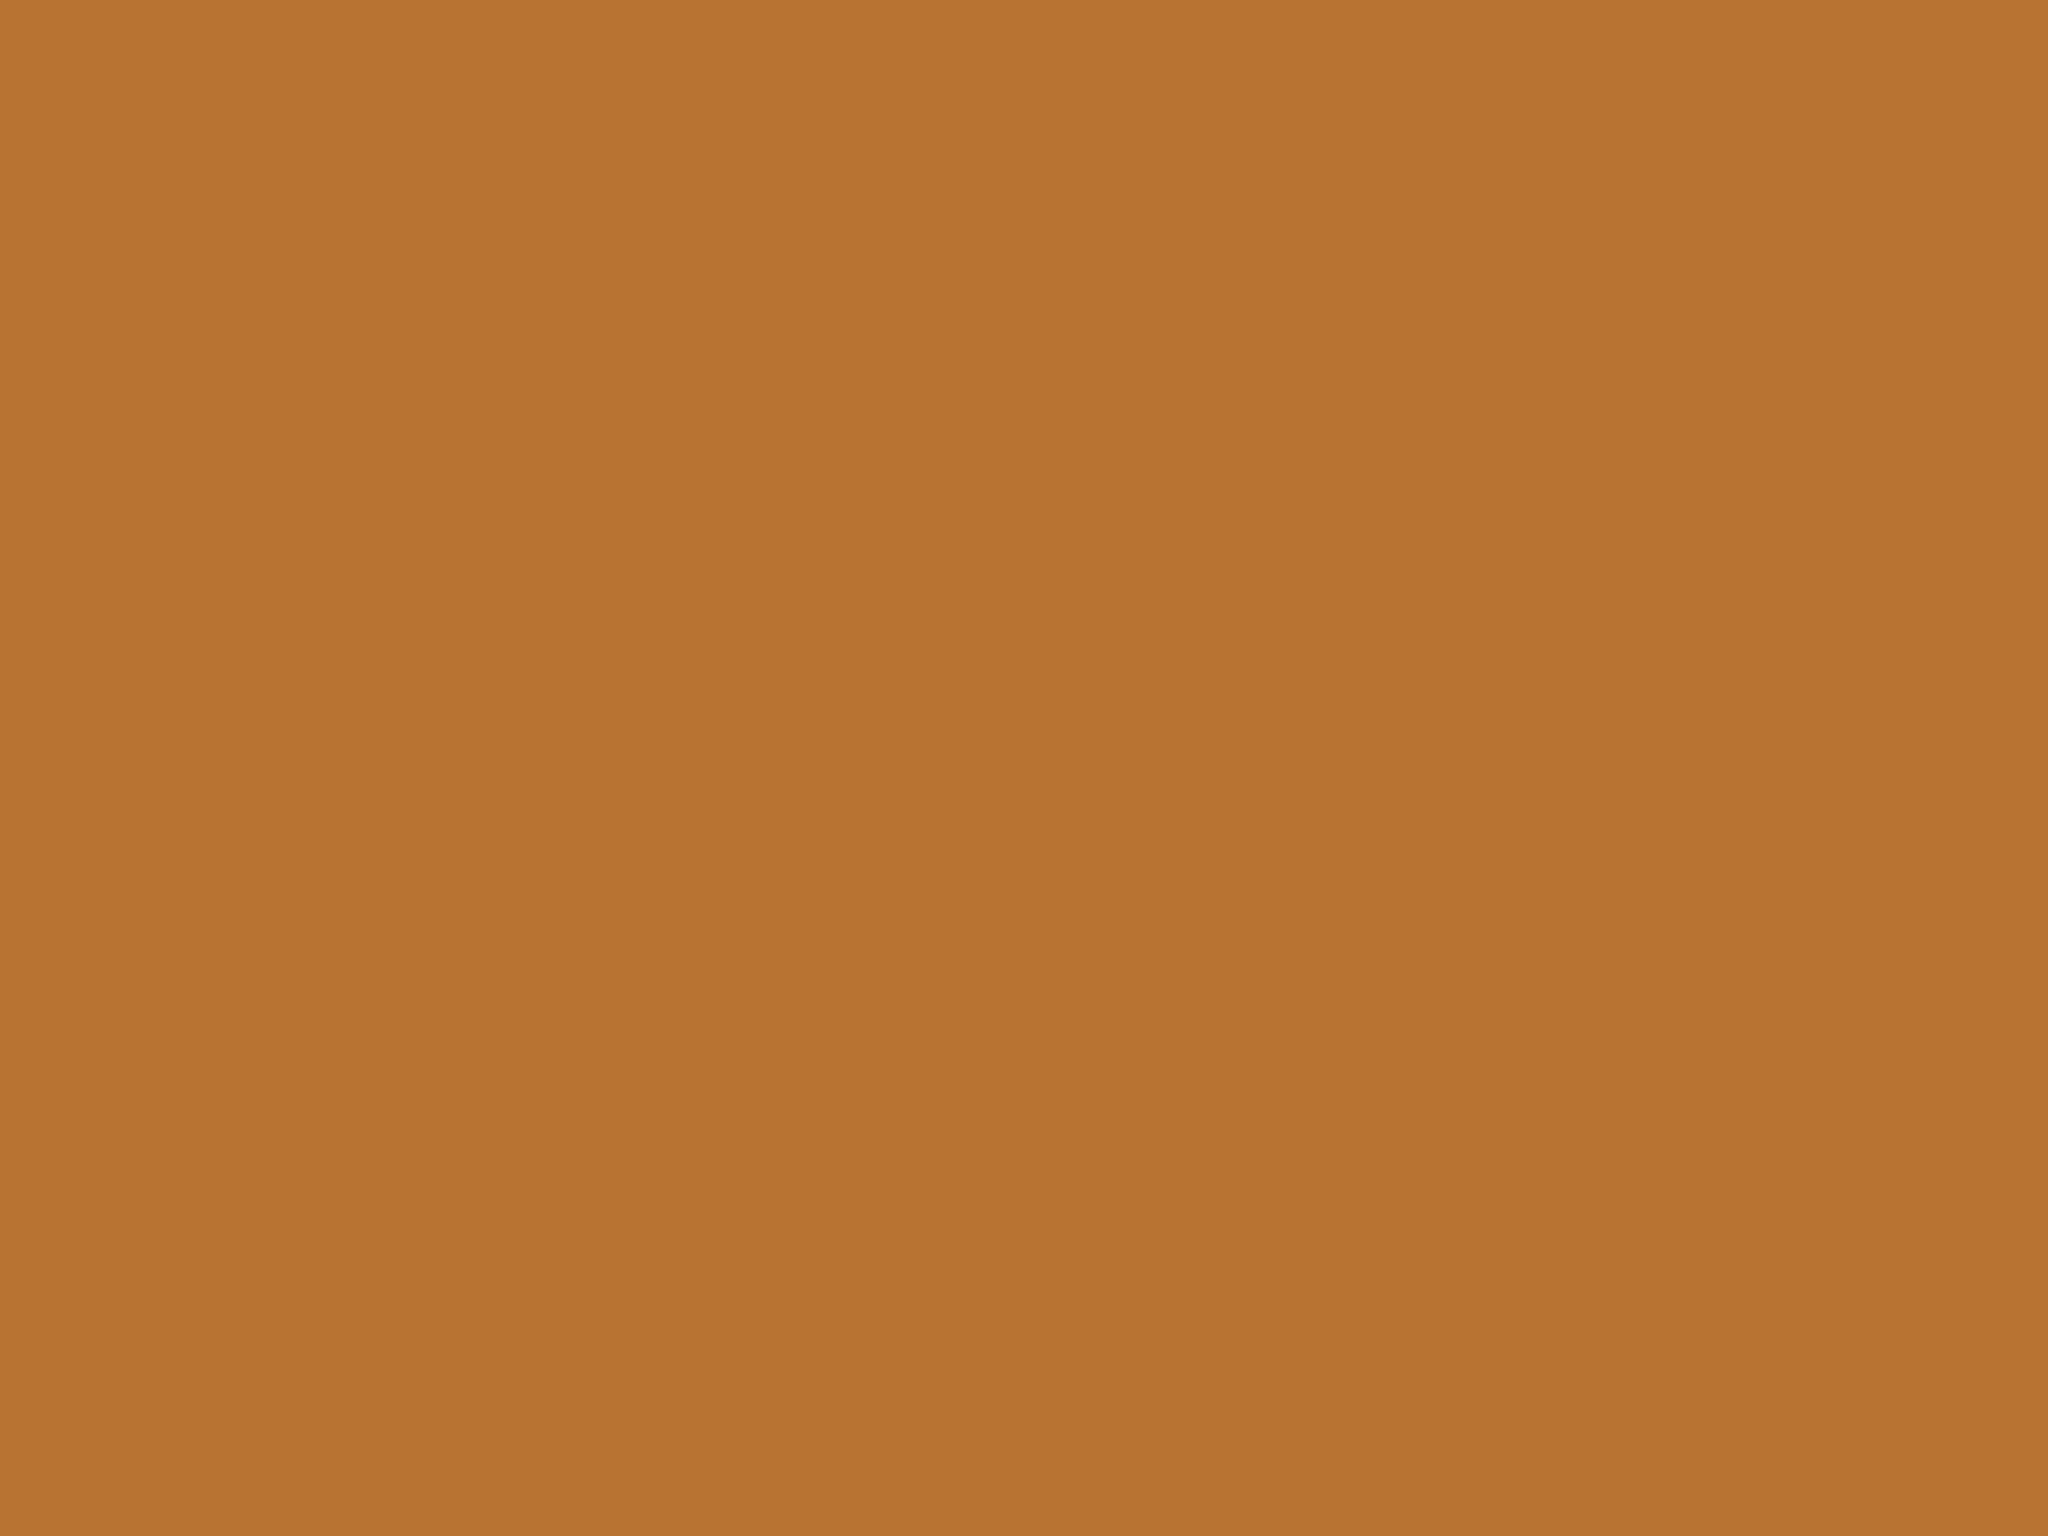 2048x1536 Copper Solid Color Background